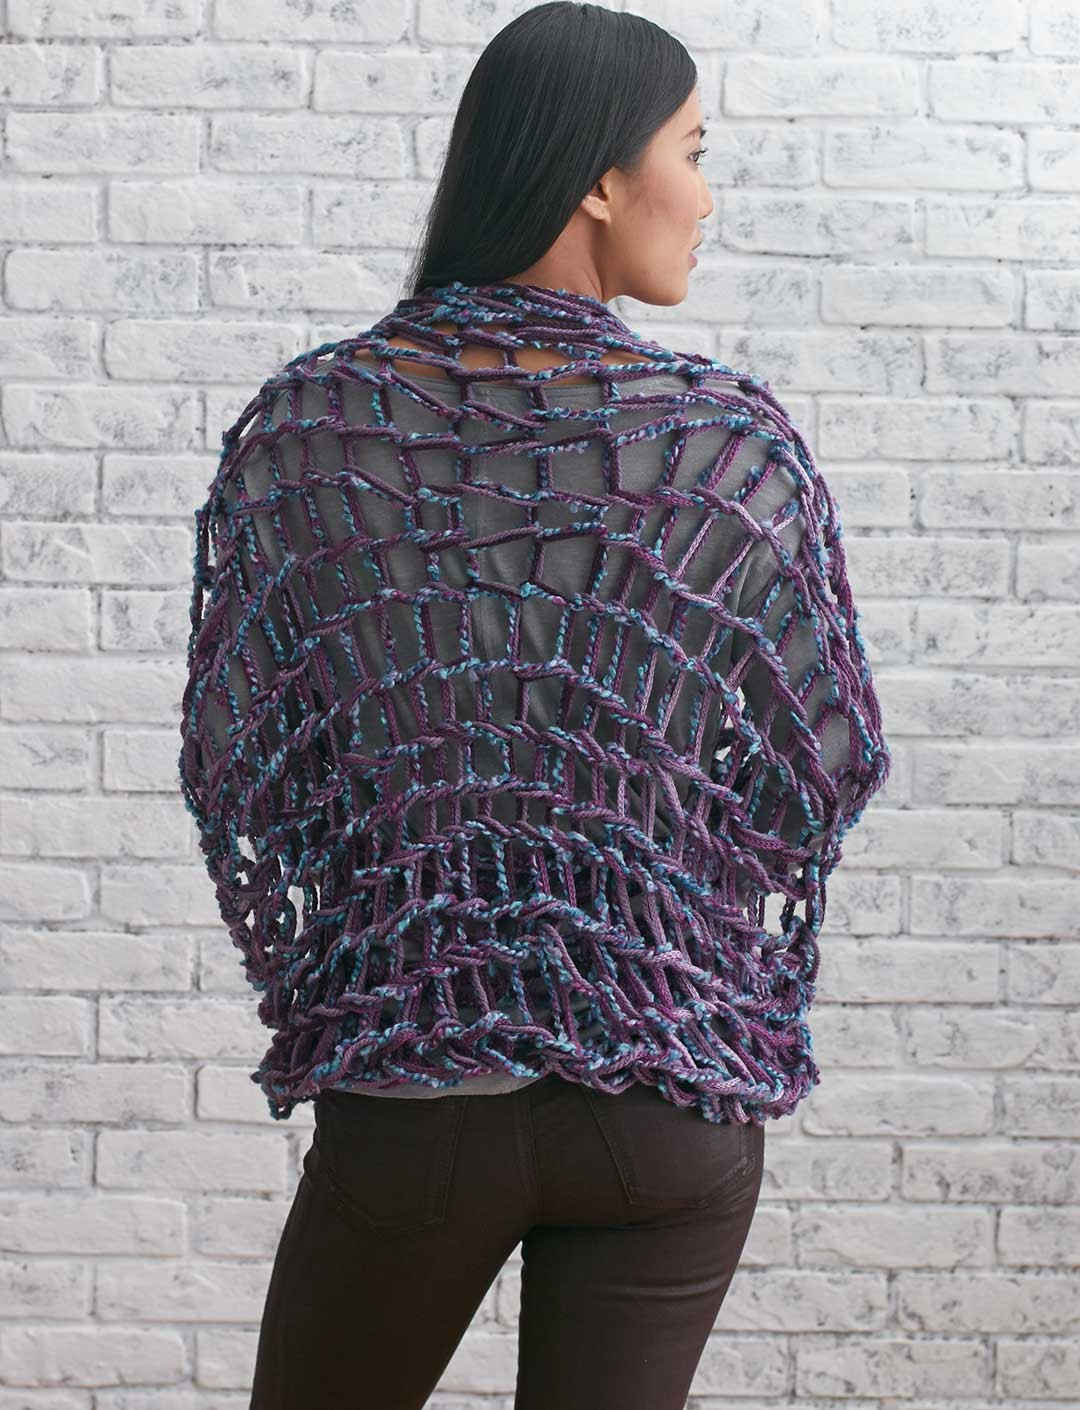 Shrug Knitting Patterns For Beginners ~ Ipaa.info for .